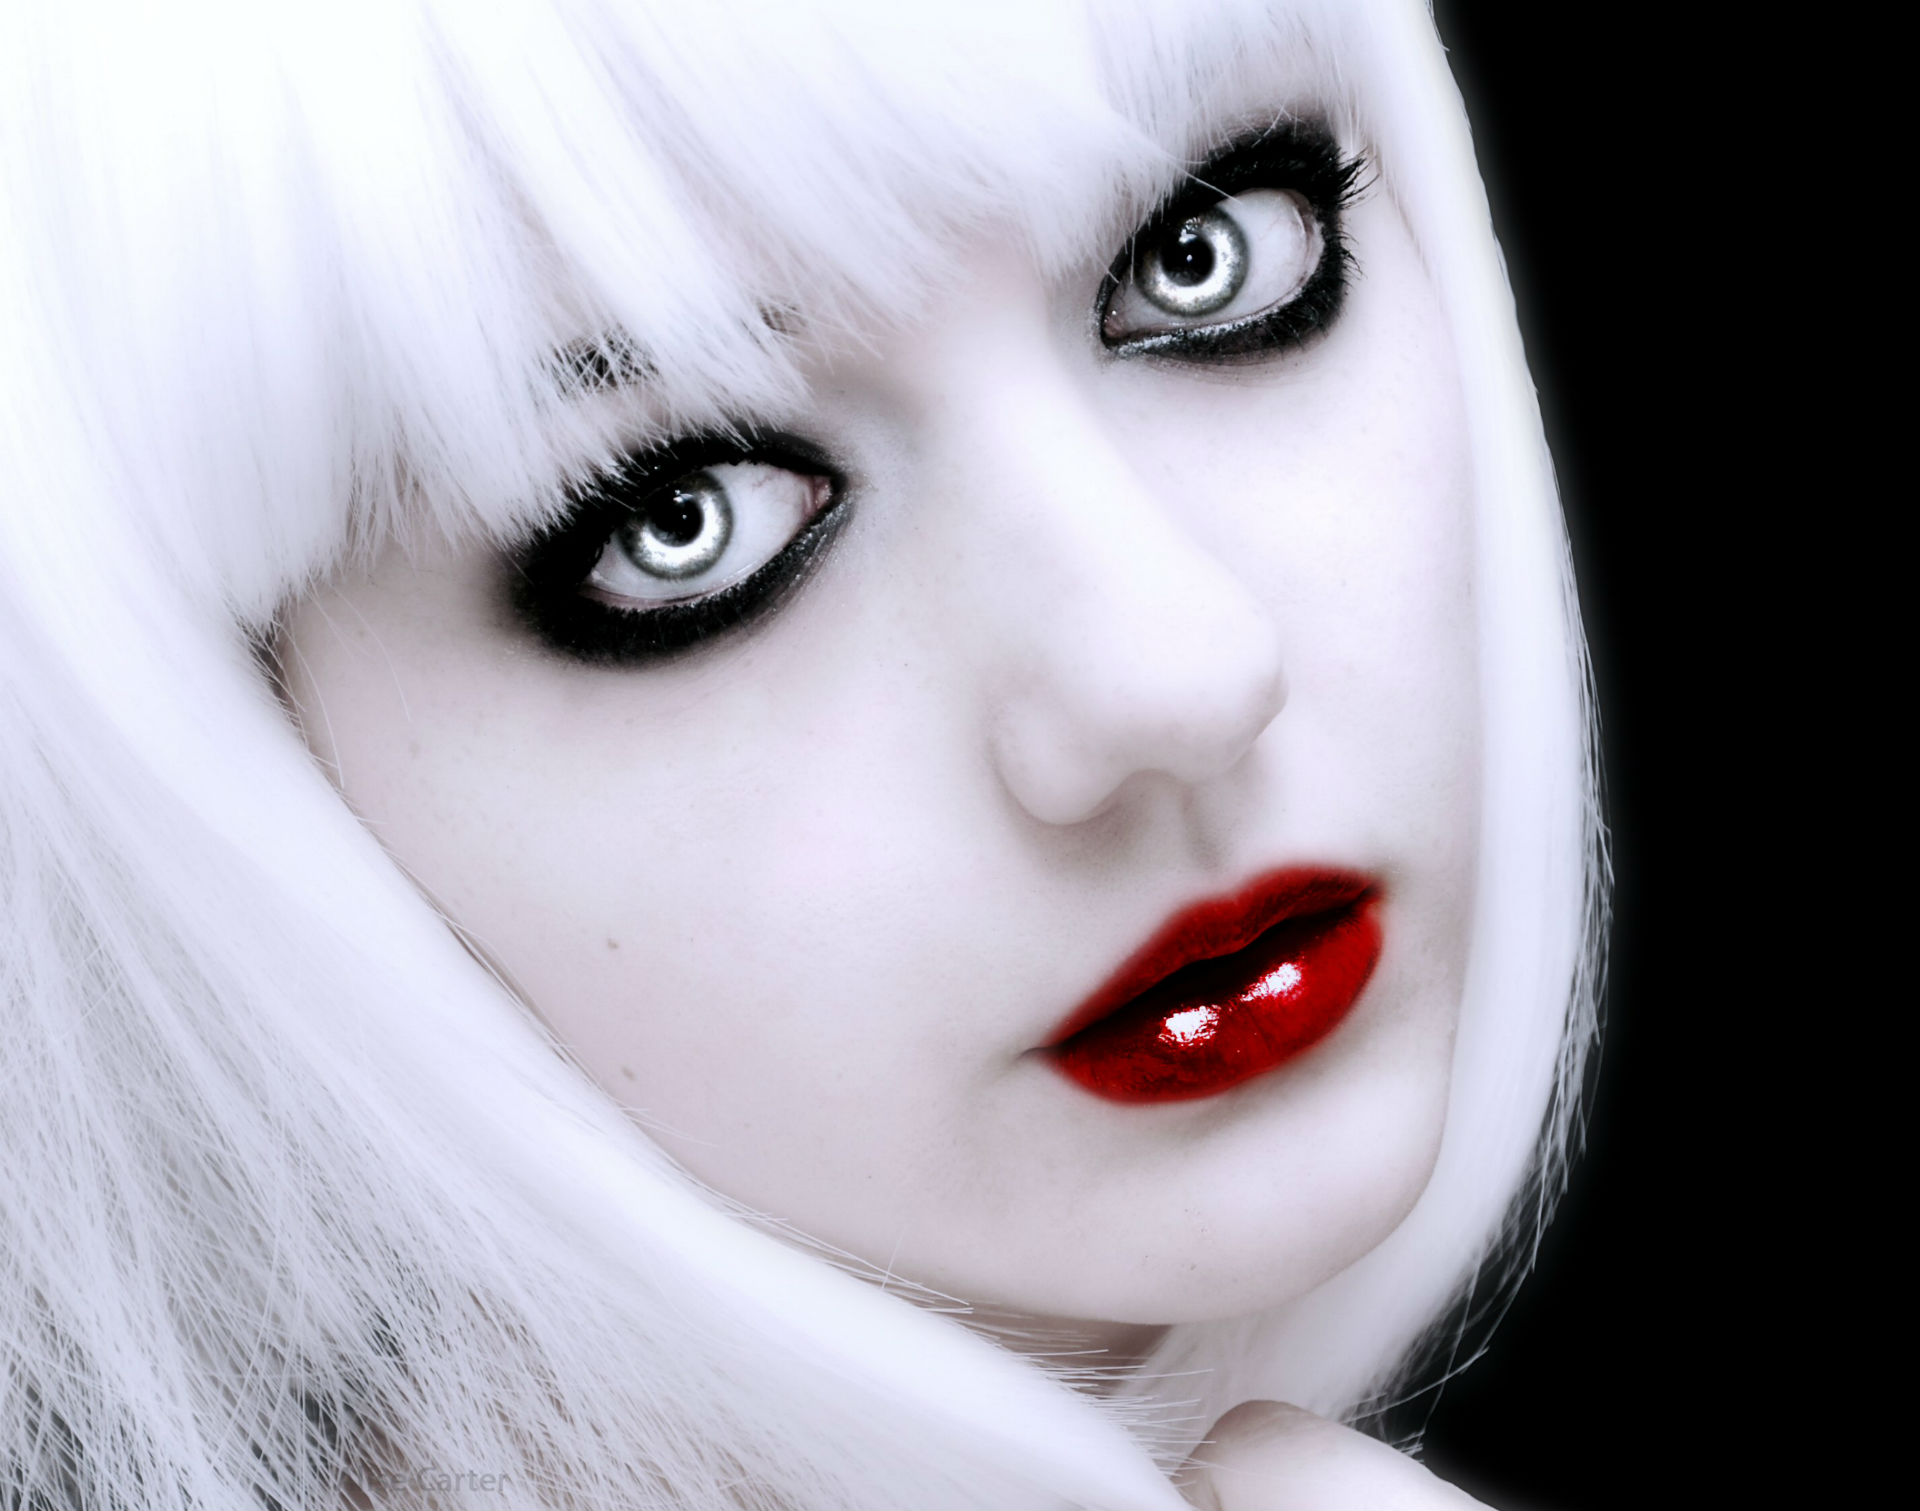 Porphyria-the Vampire Disease Top 10 Fascinating Facts About The Vampires